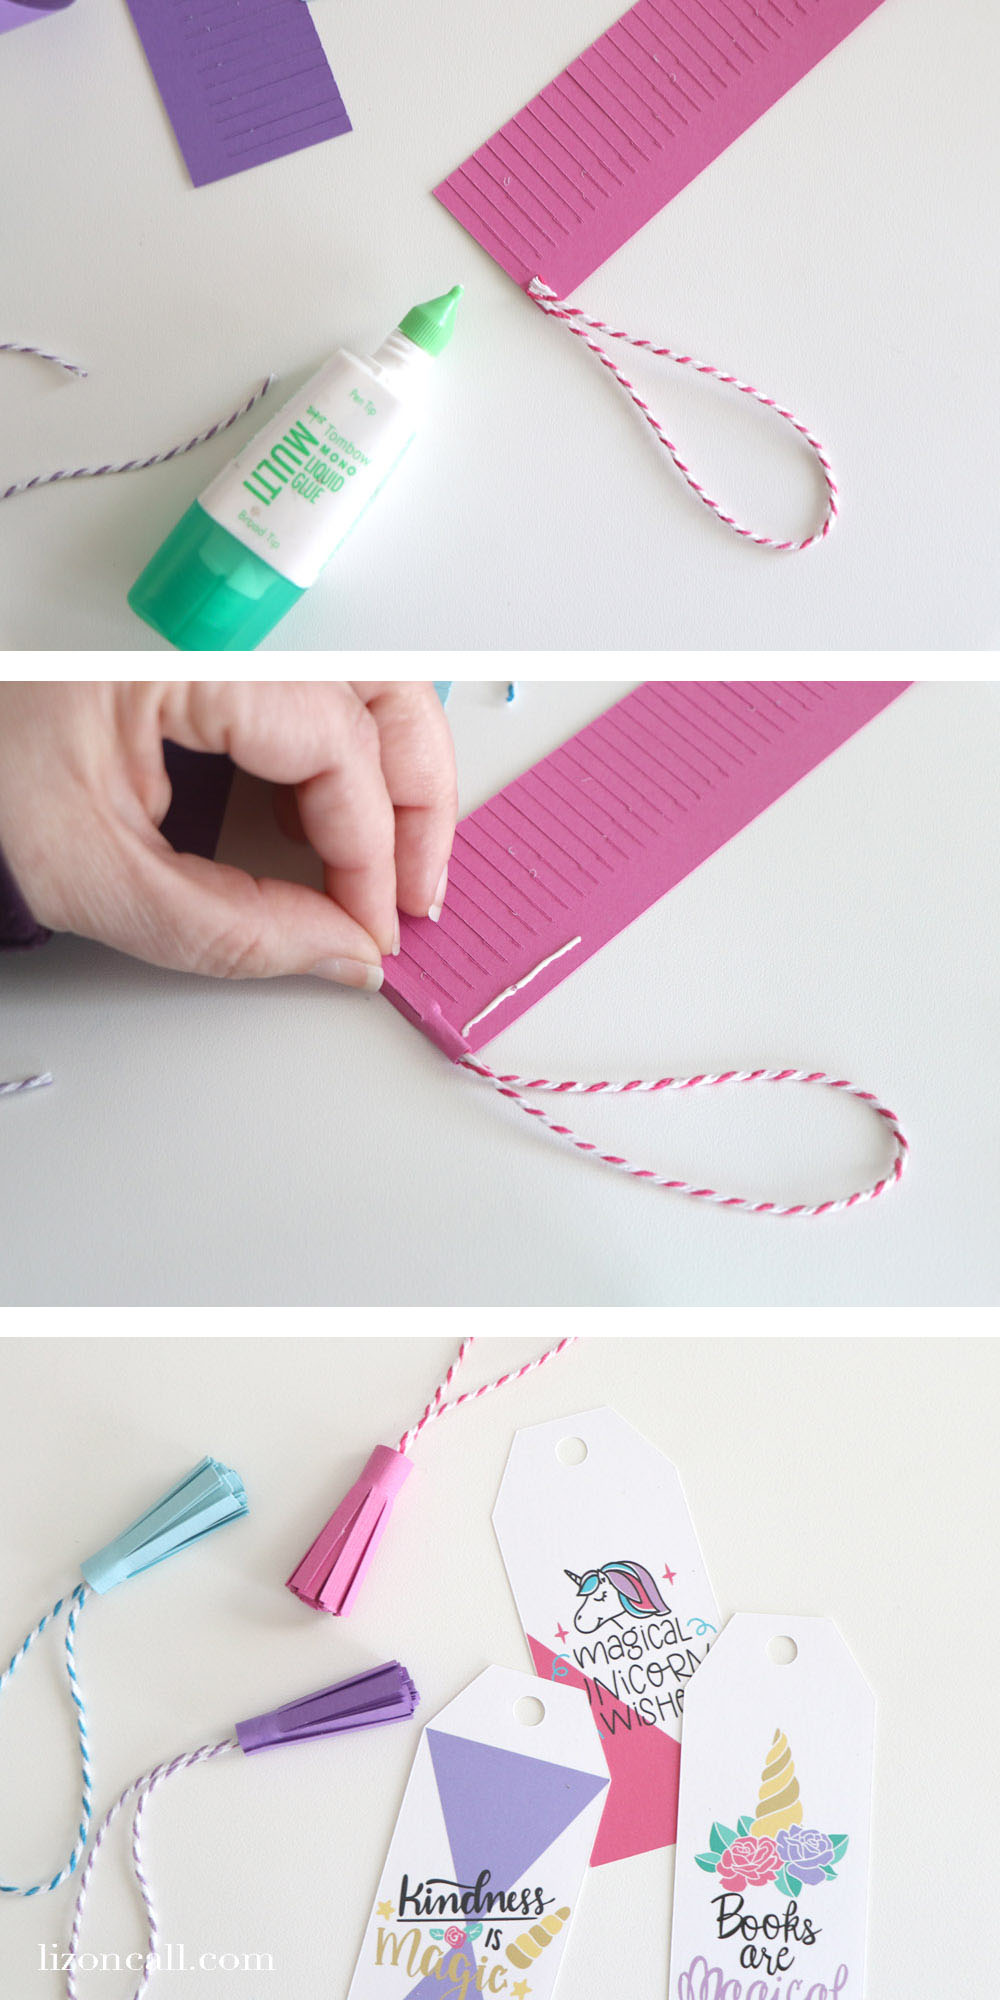 Learn how to make these Print and Cut Unicorn Tassel Bookmarks with the Cricut Machine!